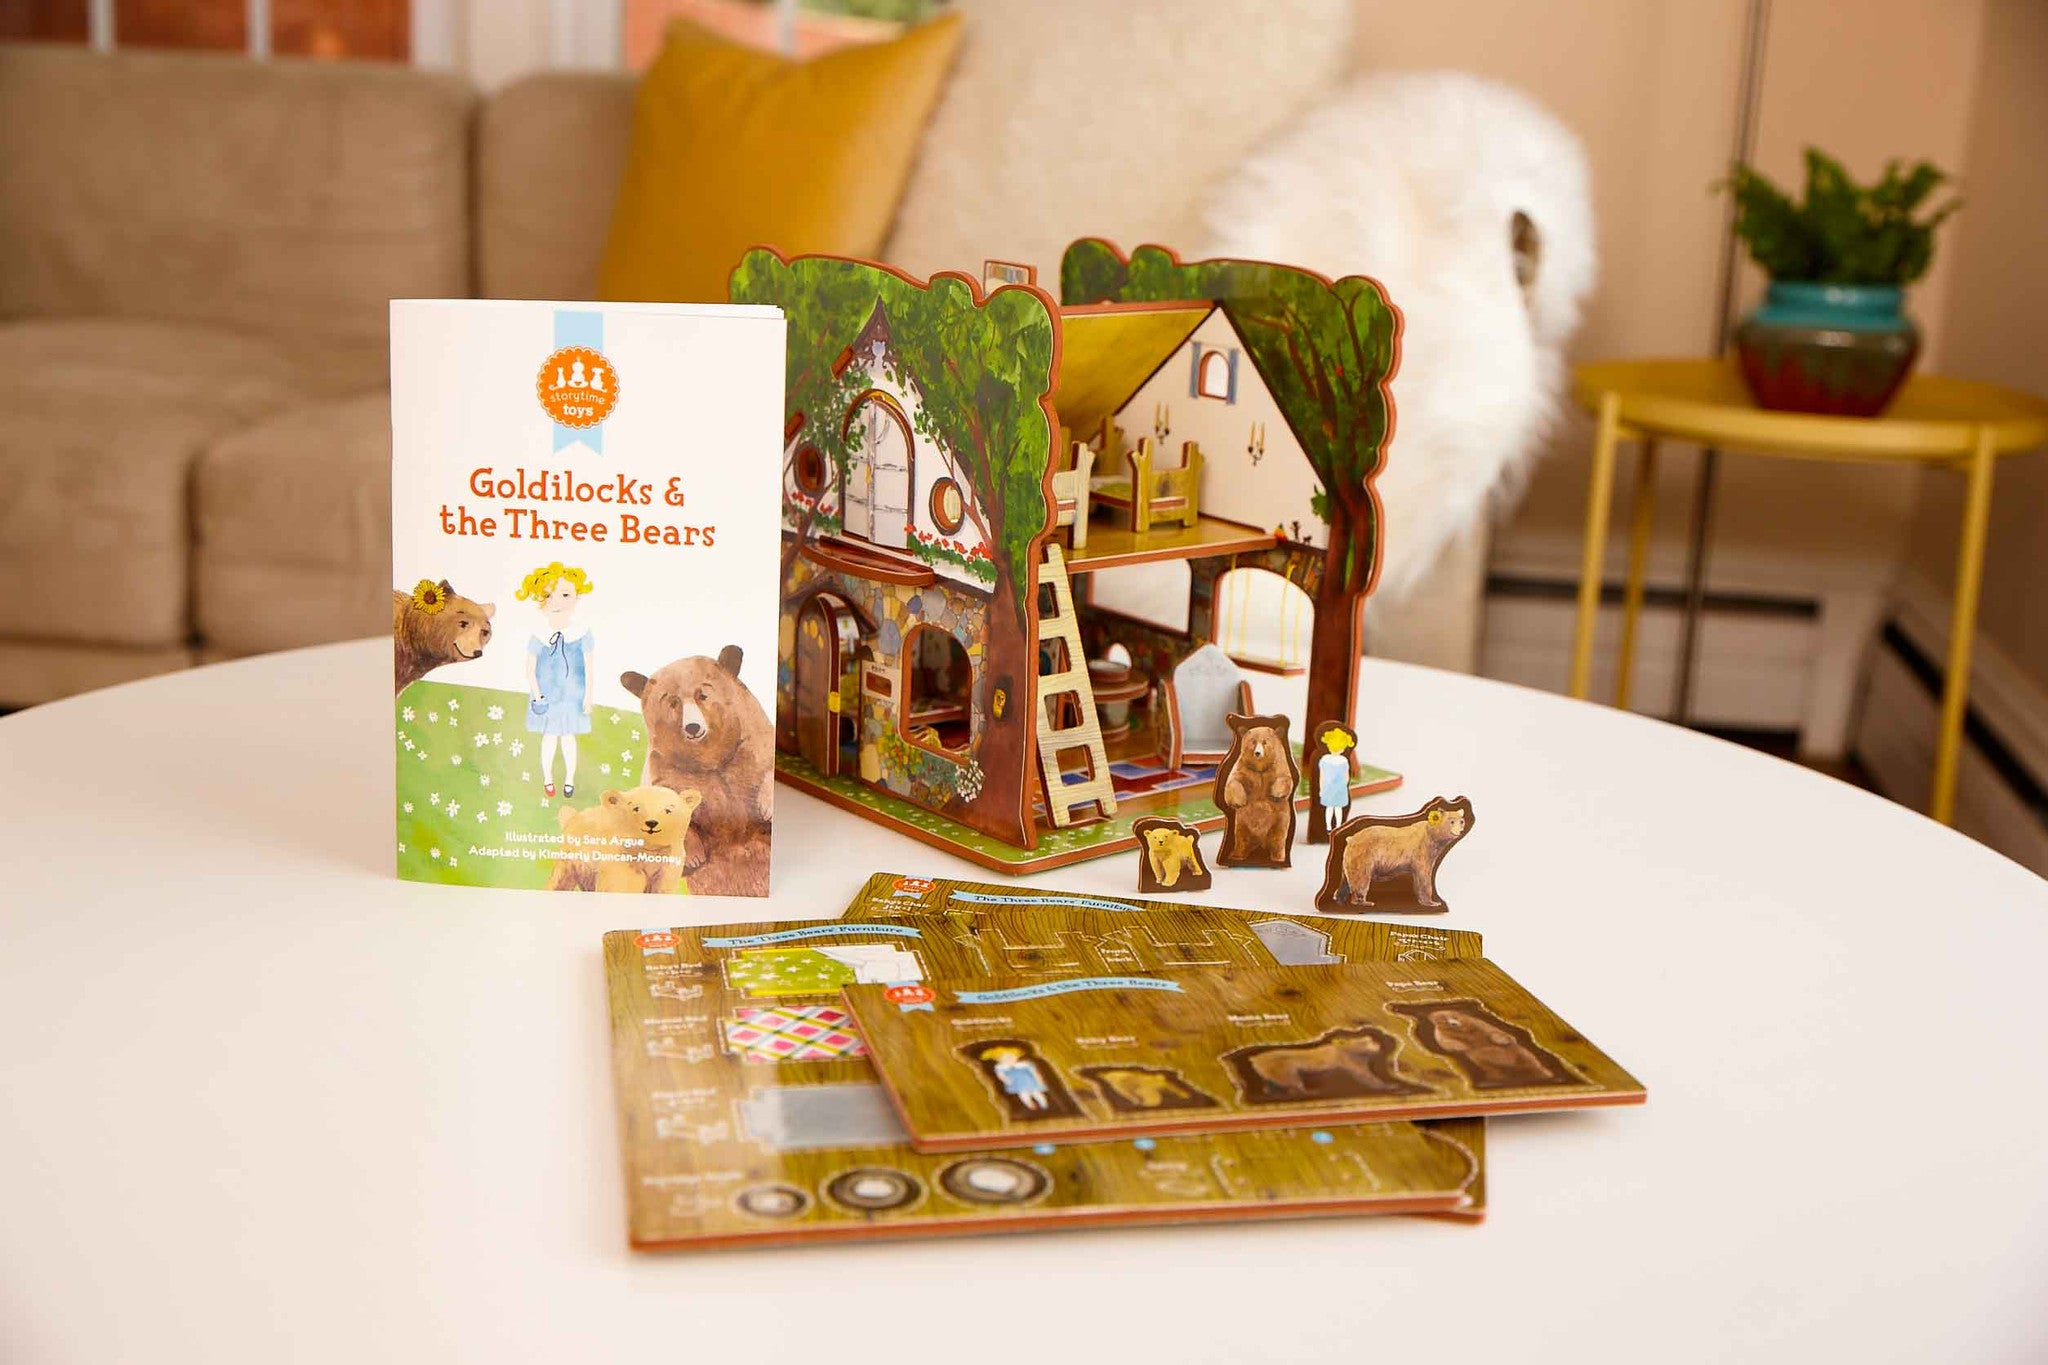 #1103 Goldilocks & the Three Bears Book & Play Set - WHOLESALE Case of 3